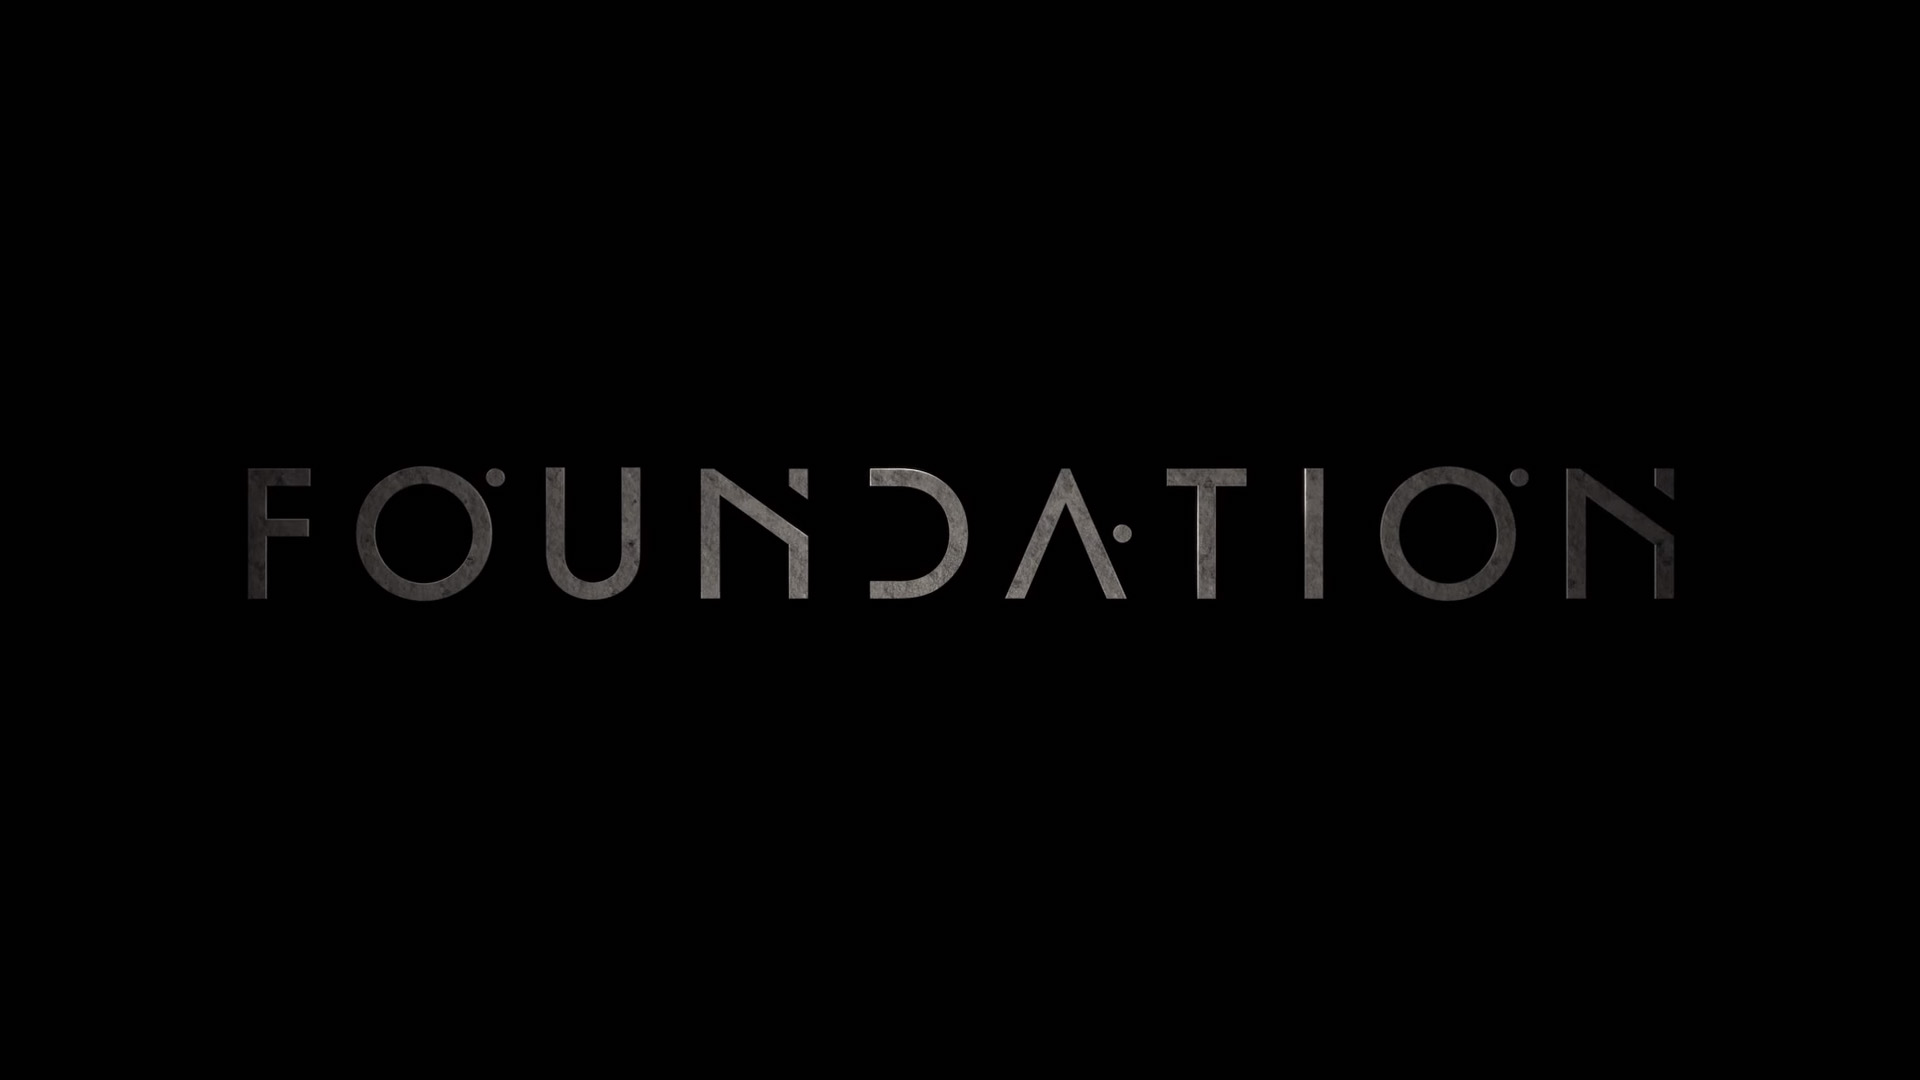 Foundation (television series)